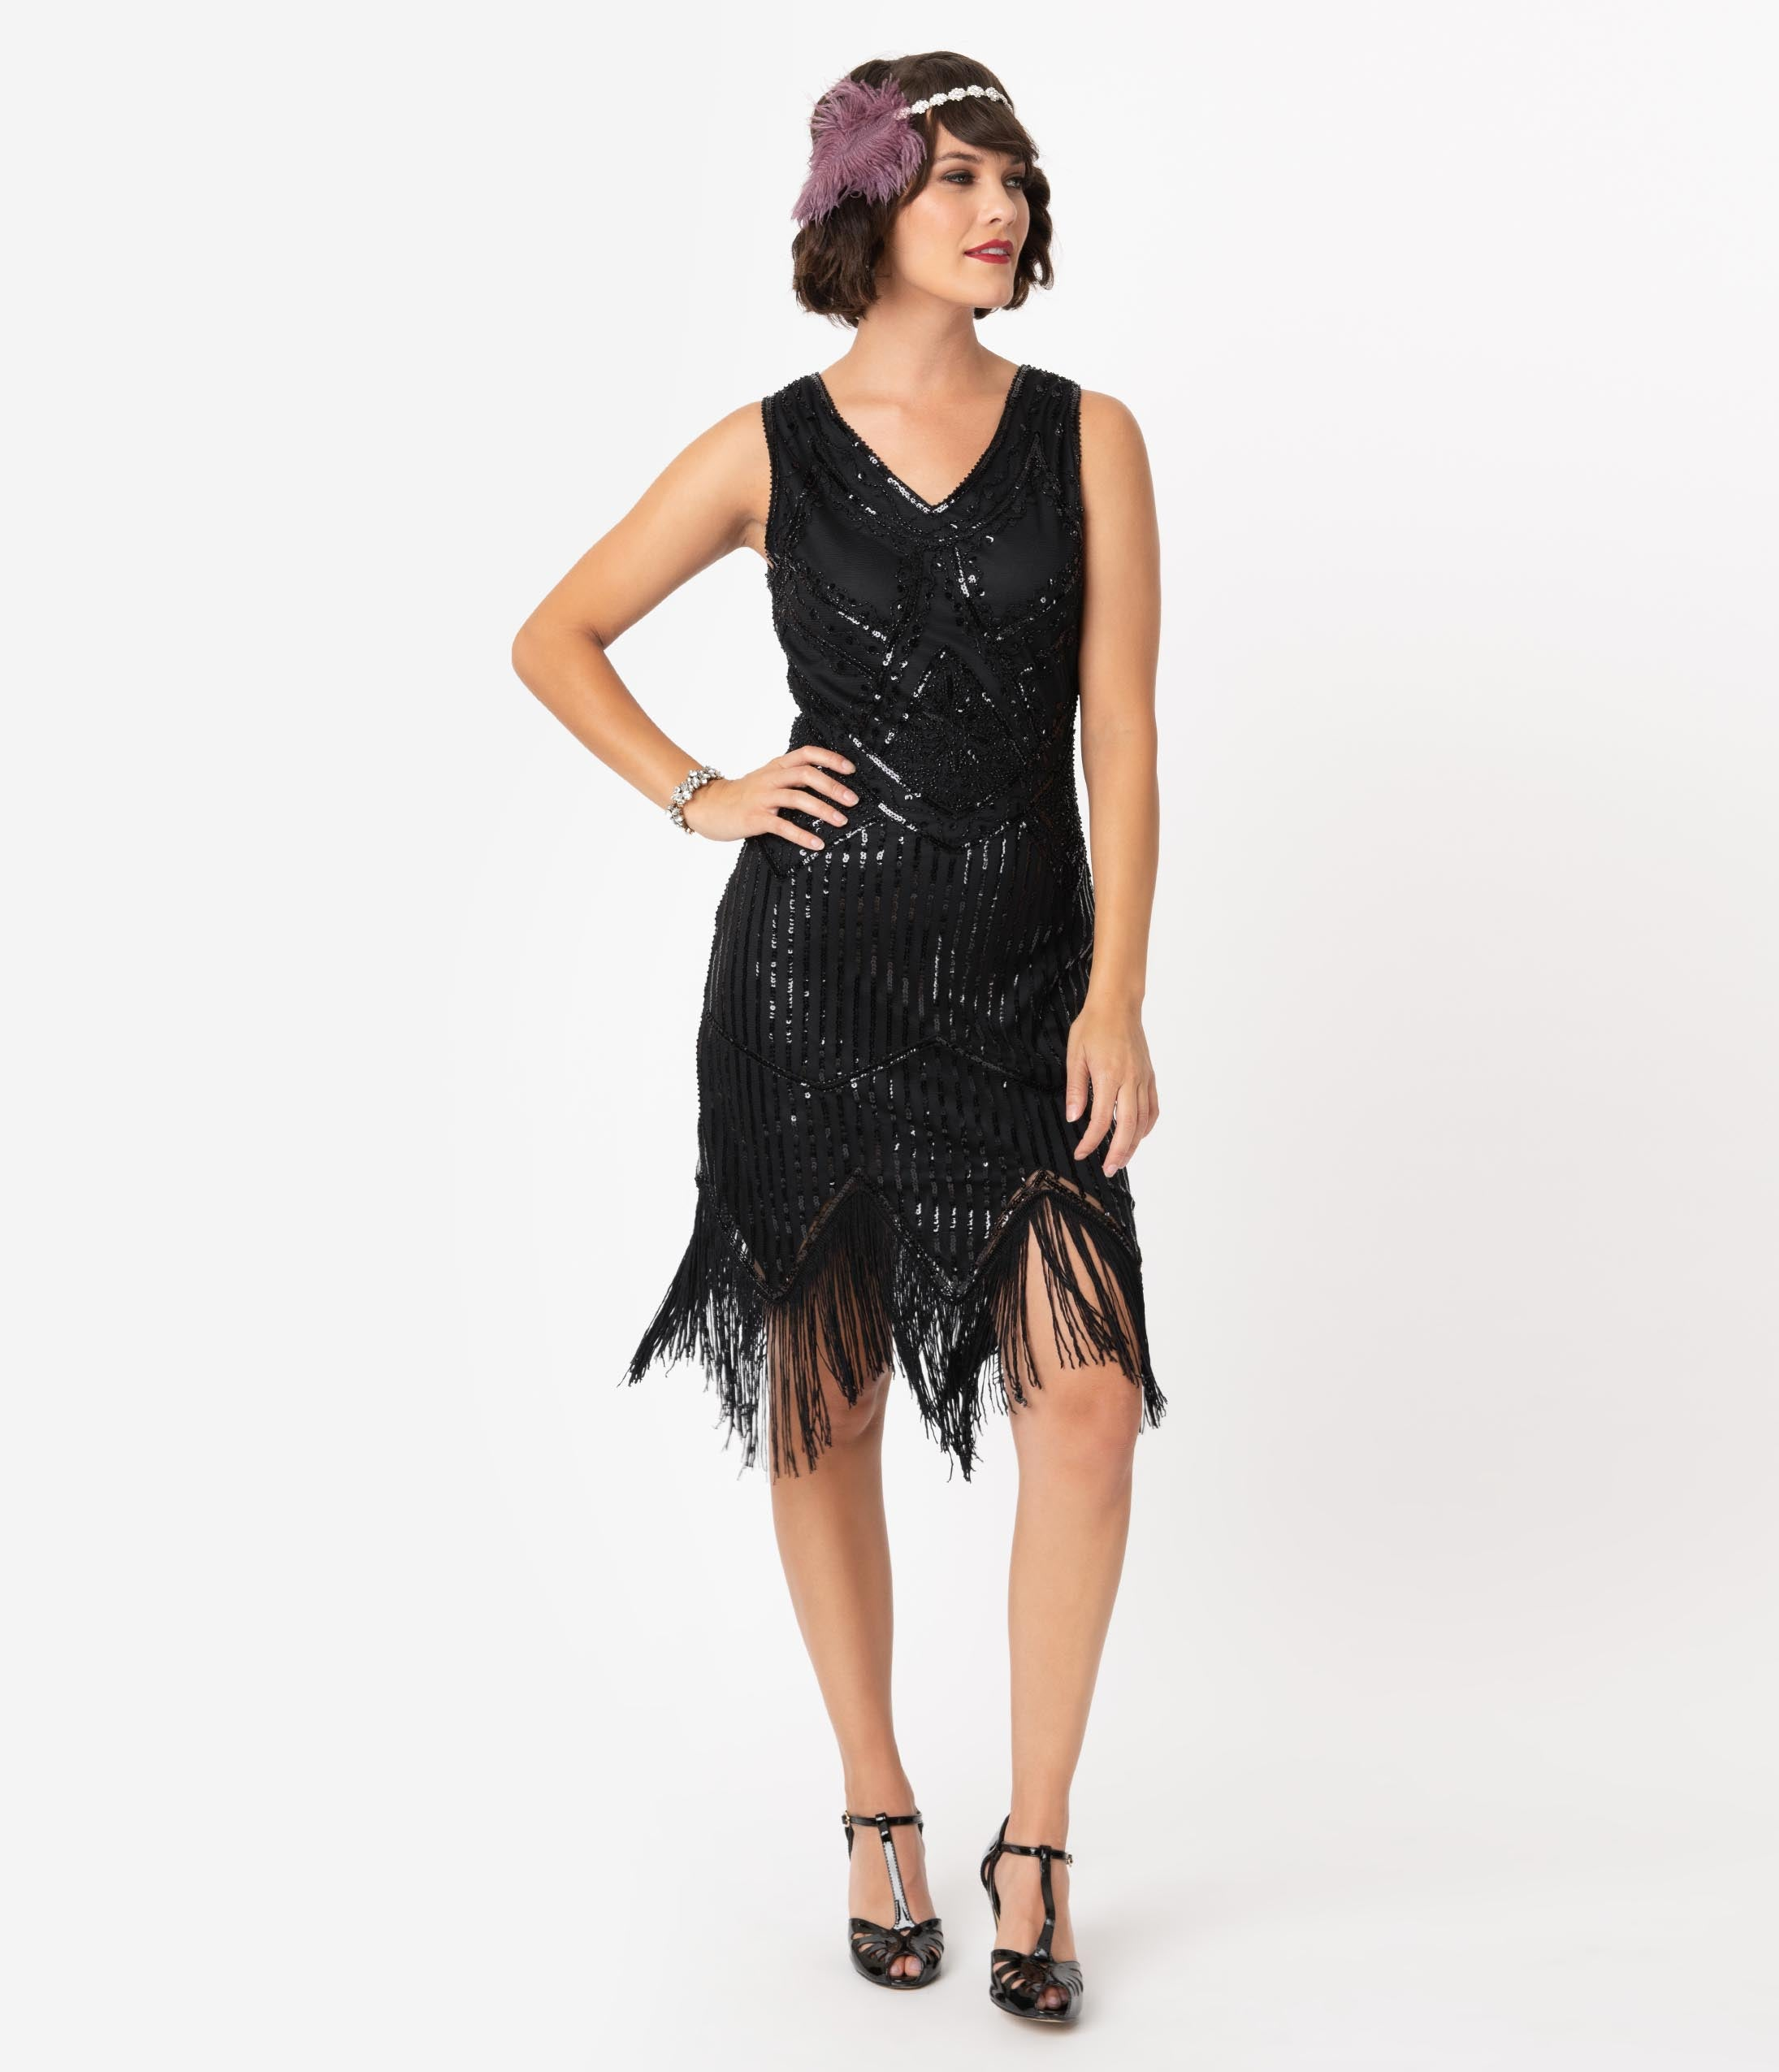 Flapper Dresses & Quality Flapper Costumes Unique Vintage 1920S Black Beaded Sequin Juliette Fringe Flapper Dress $98.00 AT vintagedancer.com